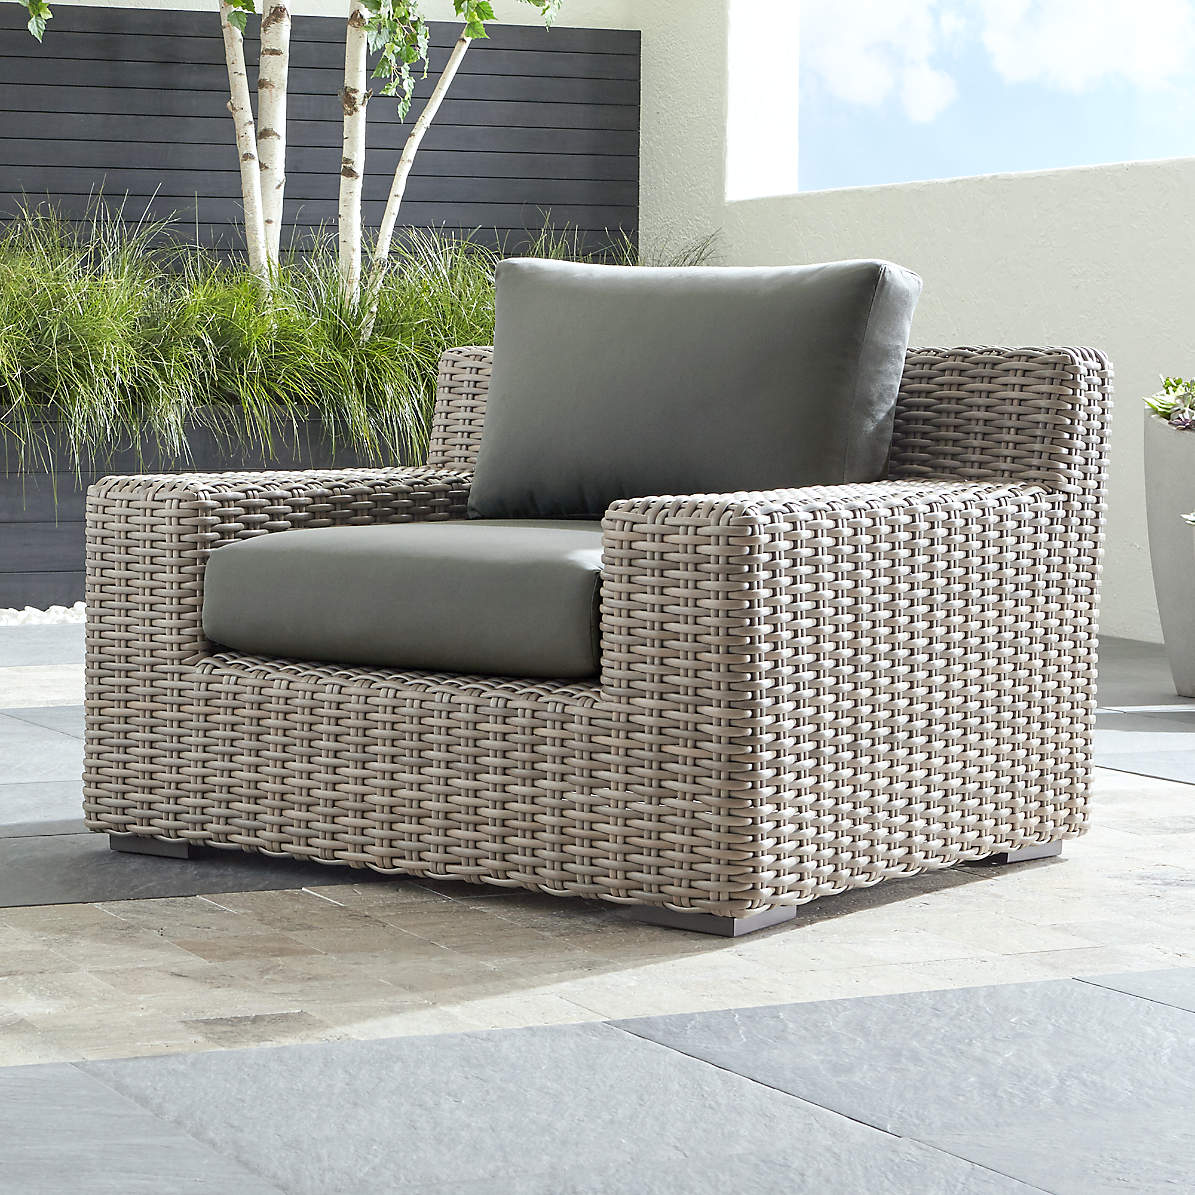 Cayman Outdoor Lounge Chair With Graphite Sunbrella Cushions Reviews Crate And Barrel